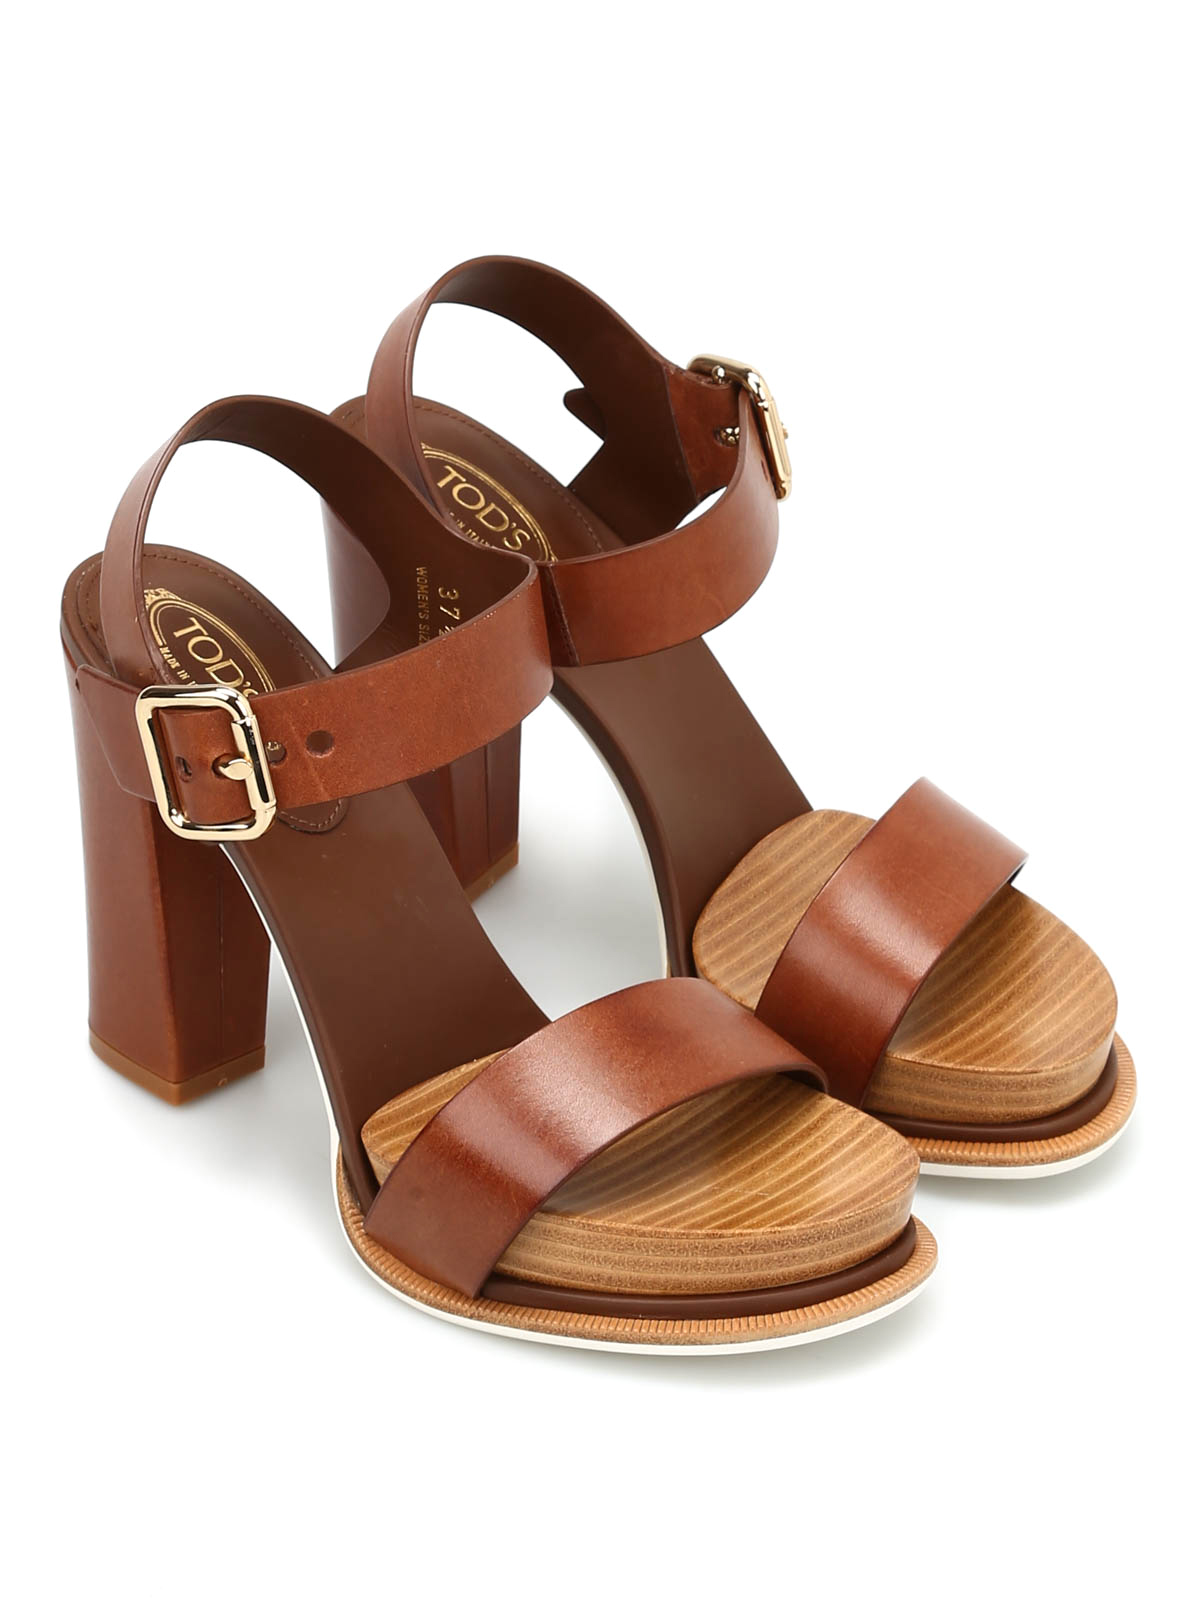 Printed Leather Sandals with Plateau Spring/summer Tod's fZPIe